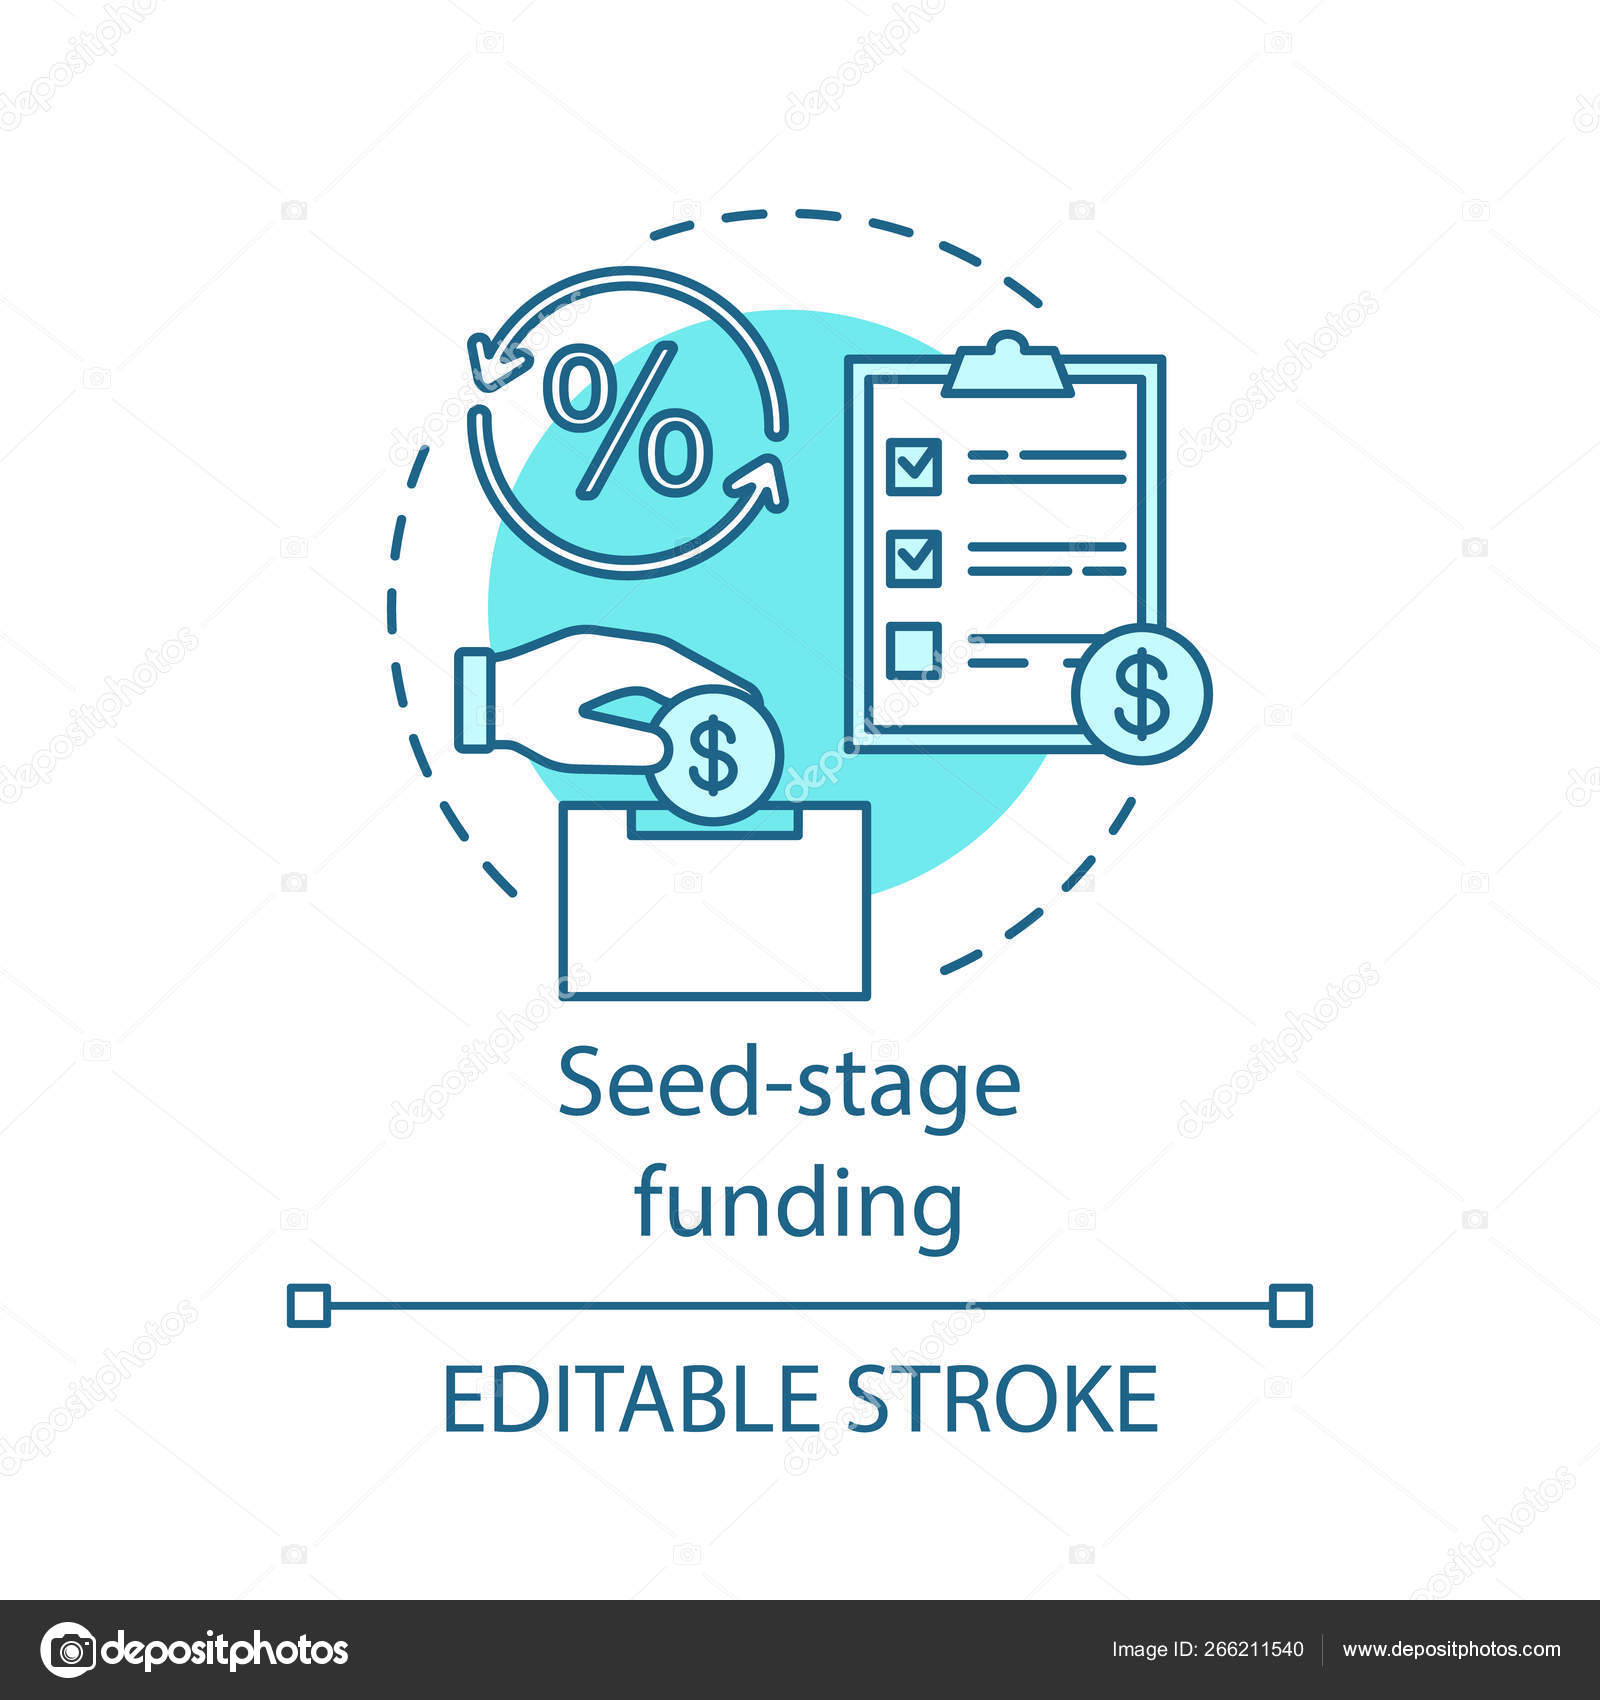 Seed-stage funding concept icon — Stock Vector © bsd #266211540